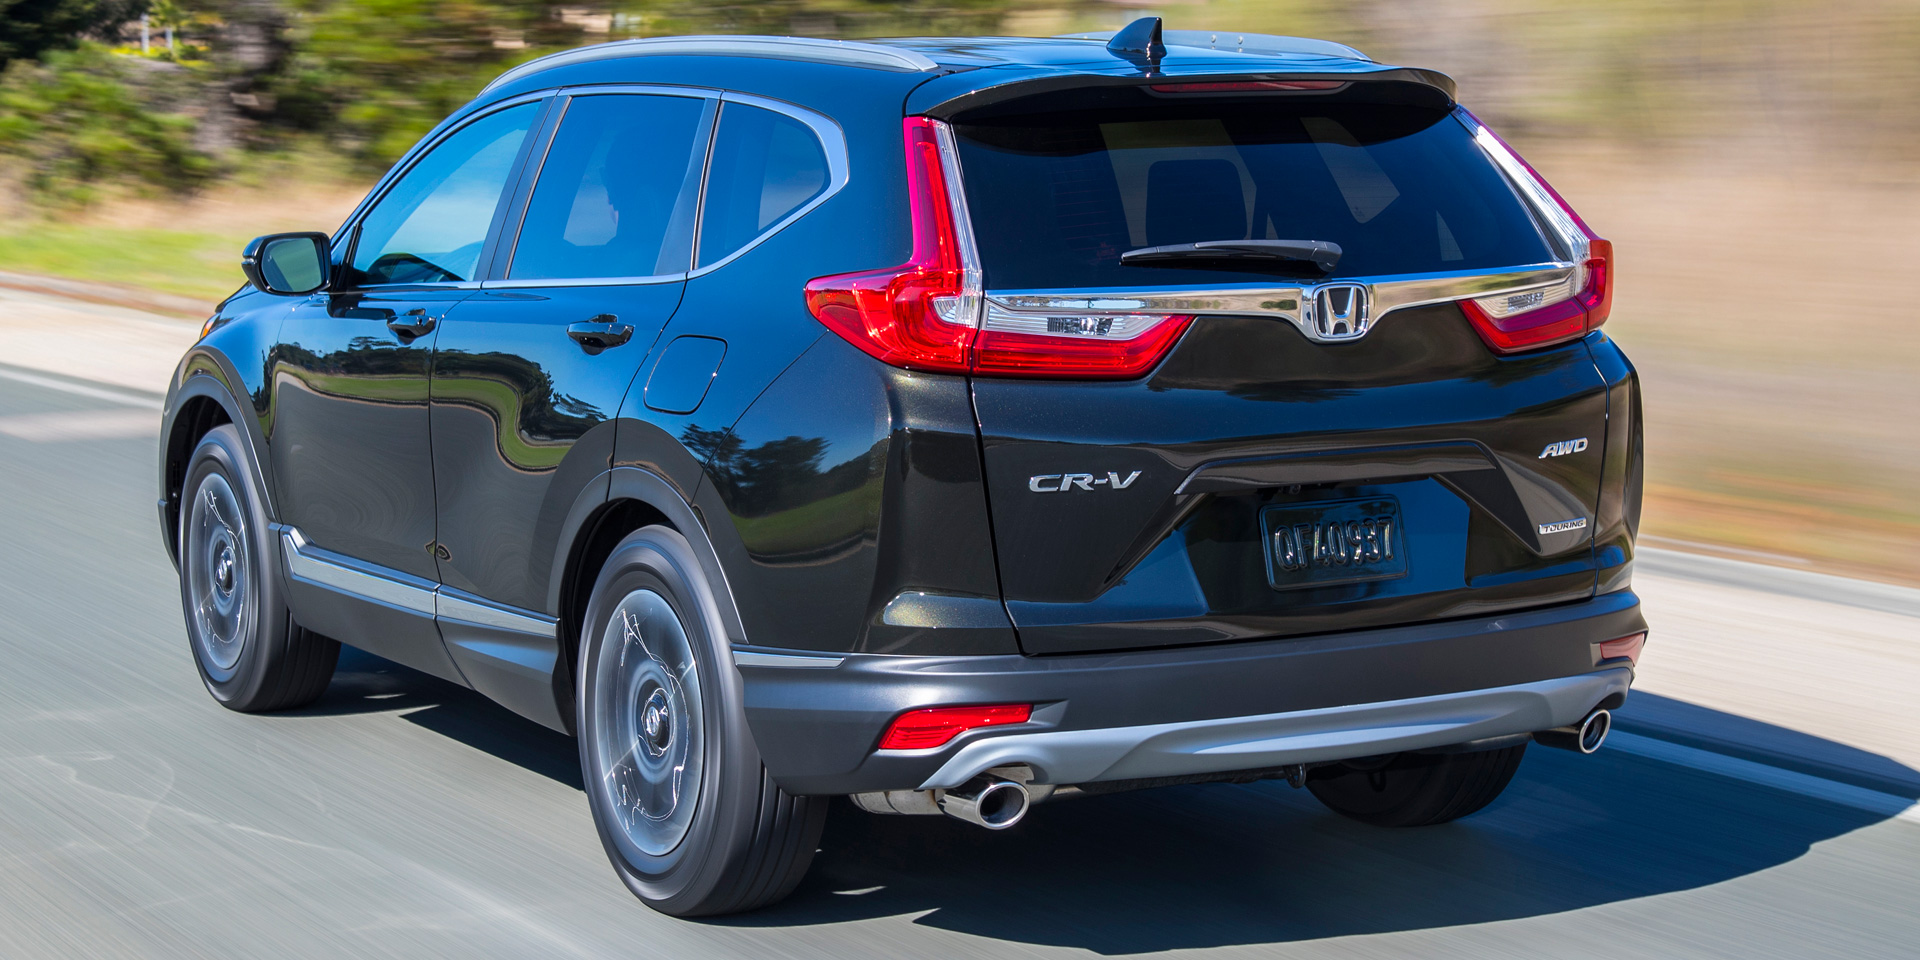 2018 honda cr v vehicles on display chicago auto show for Honda crv 2017 vs 2018